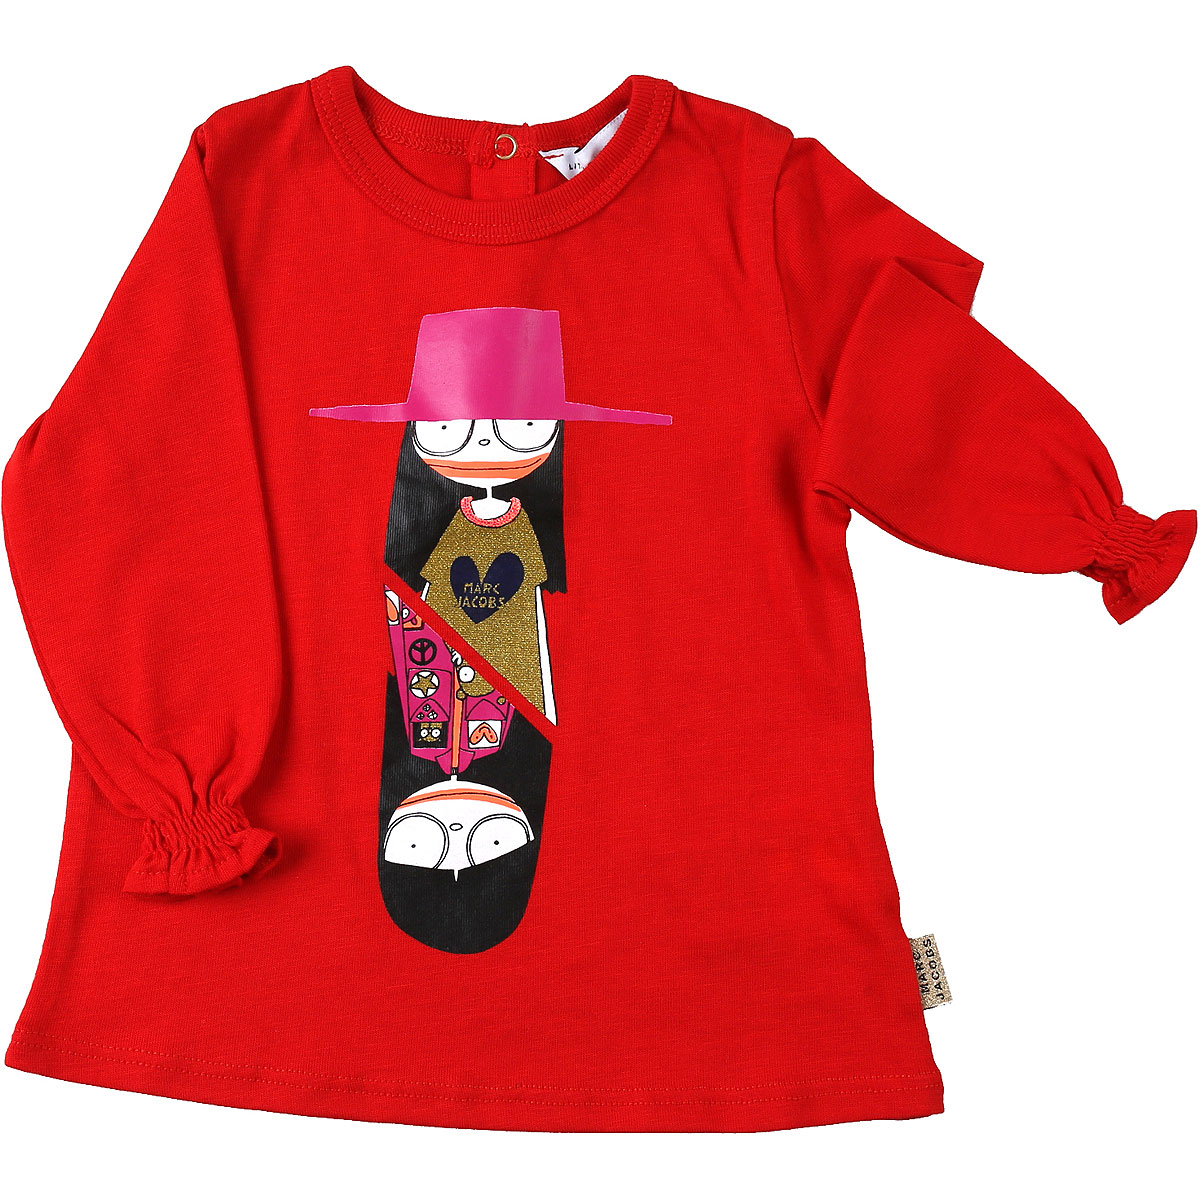 Marc Jacobs Baby T-Shirt for Girls On Sale, Red, Cotton, 2019, 12M 18M 2Y 3Y 6M 9M